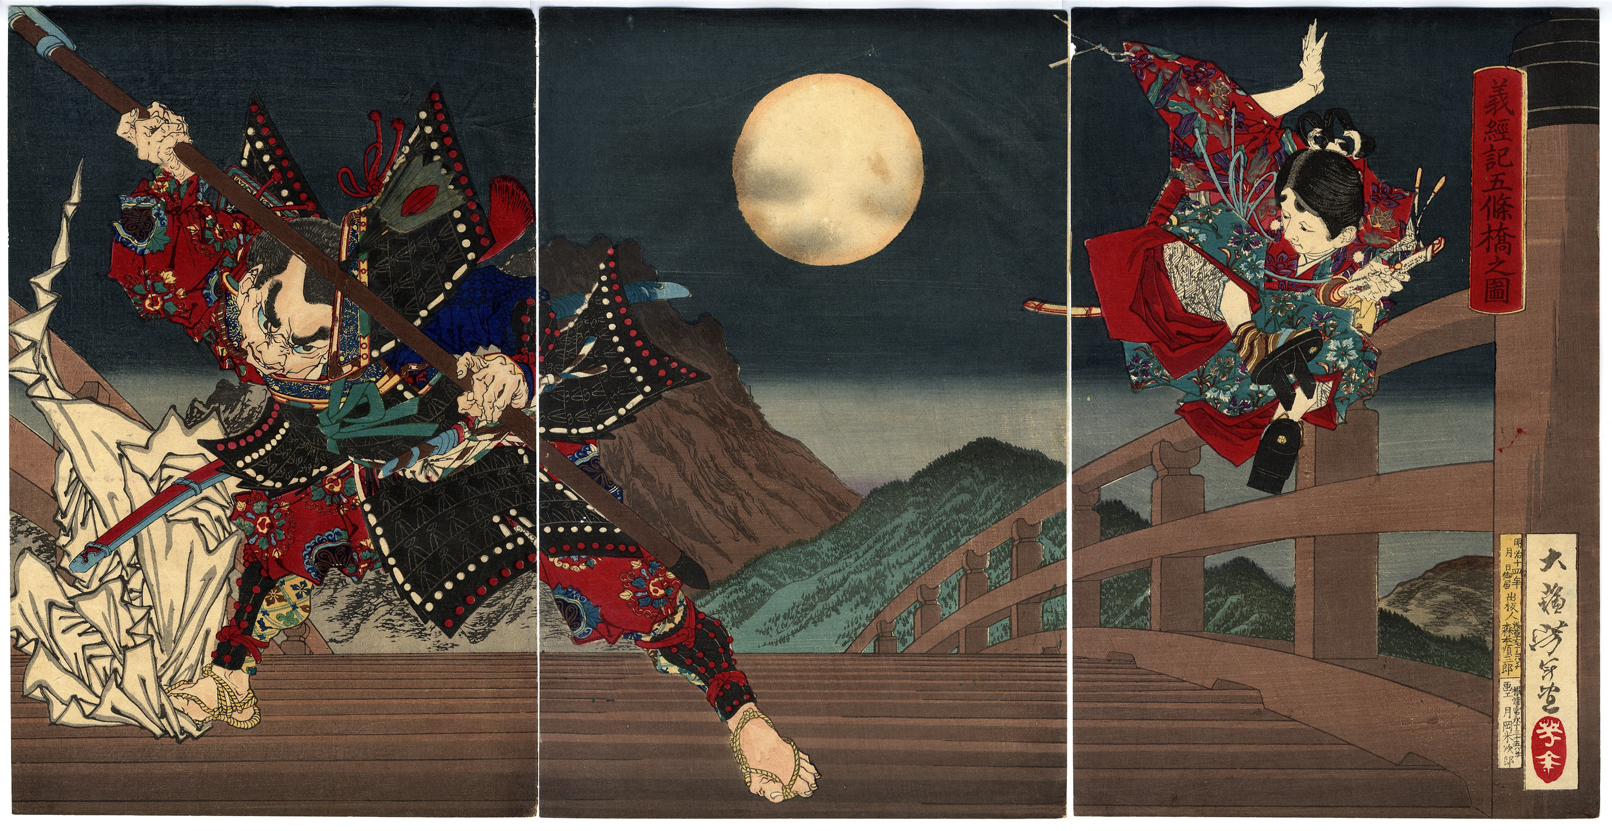 http://www.japanese-finearts.com/item/item_images/35/A09-0611/09-0611.jpg